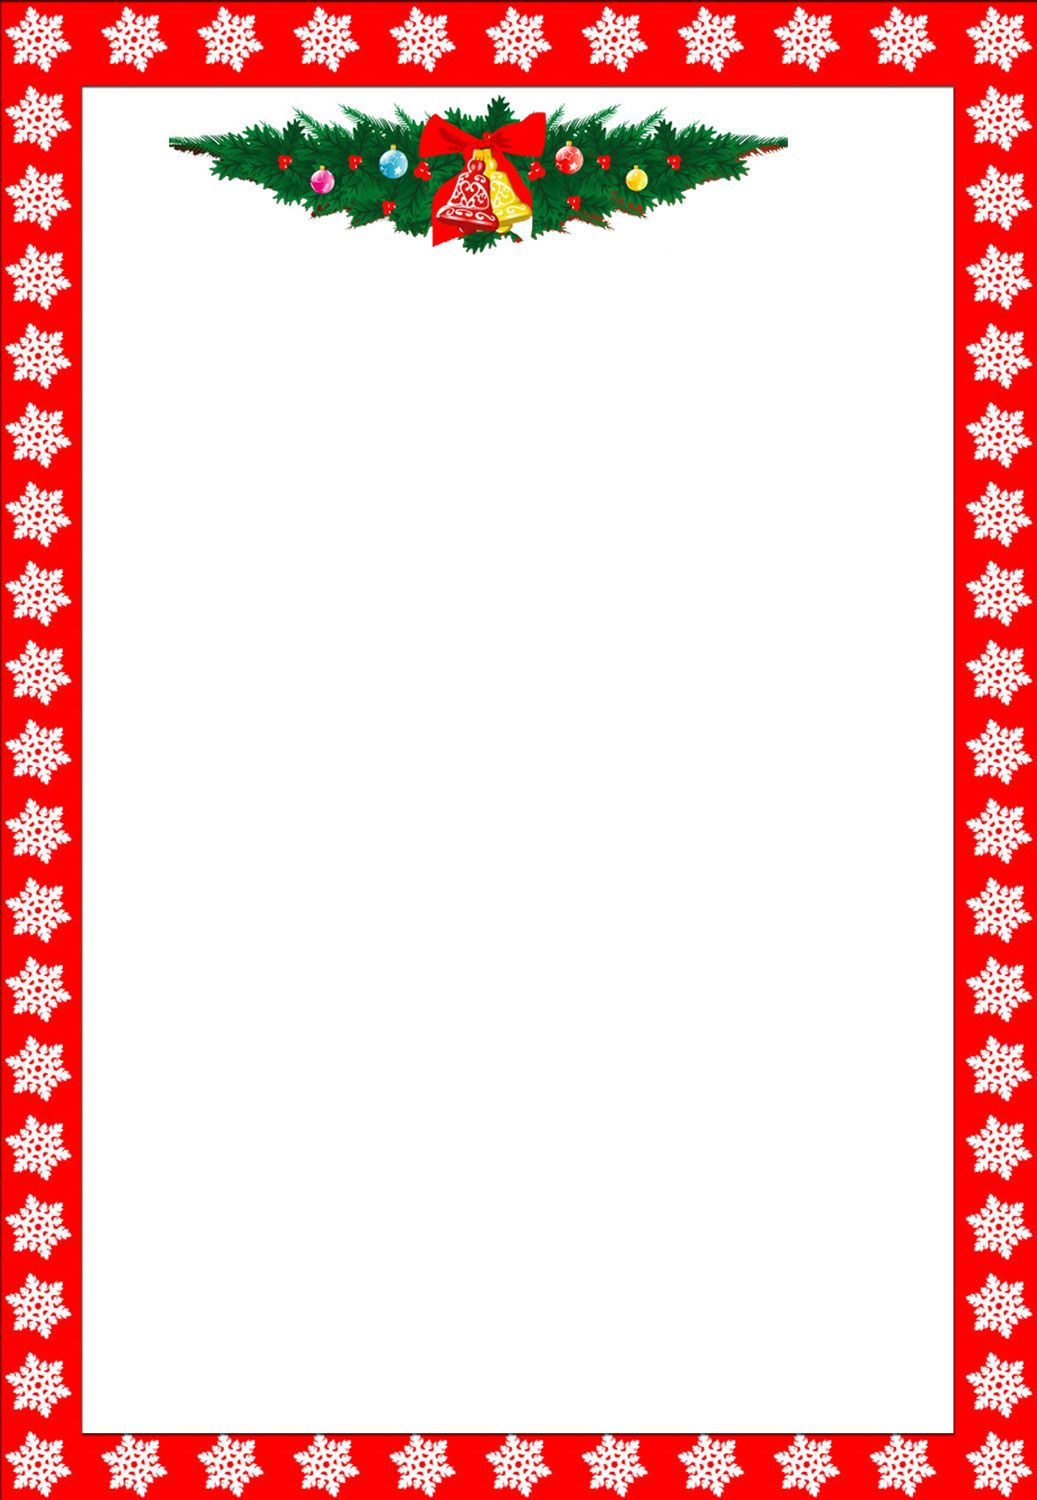 free christmas borders clipart of christmas borders free christmas border templates christmas moment clipart image for your personal projects